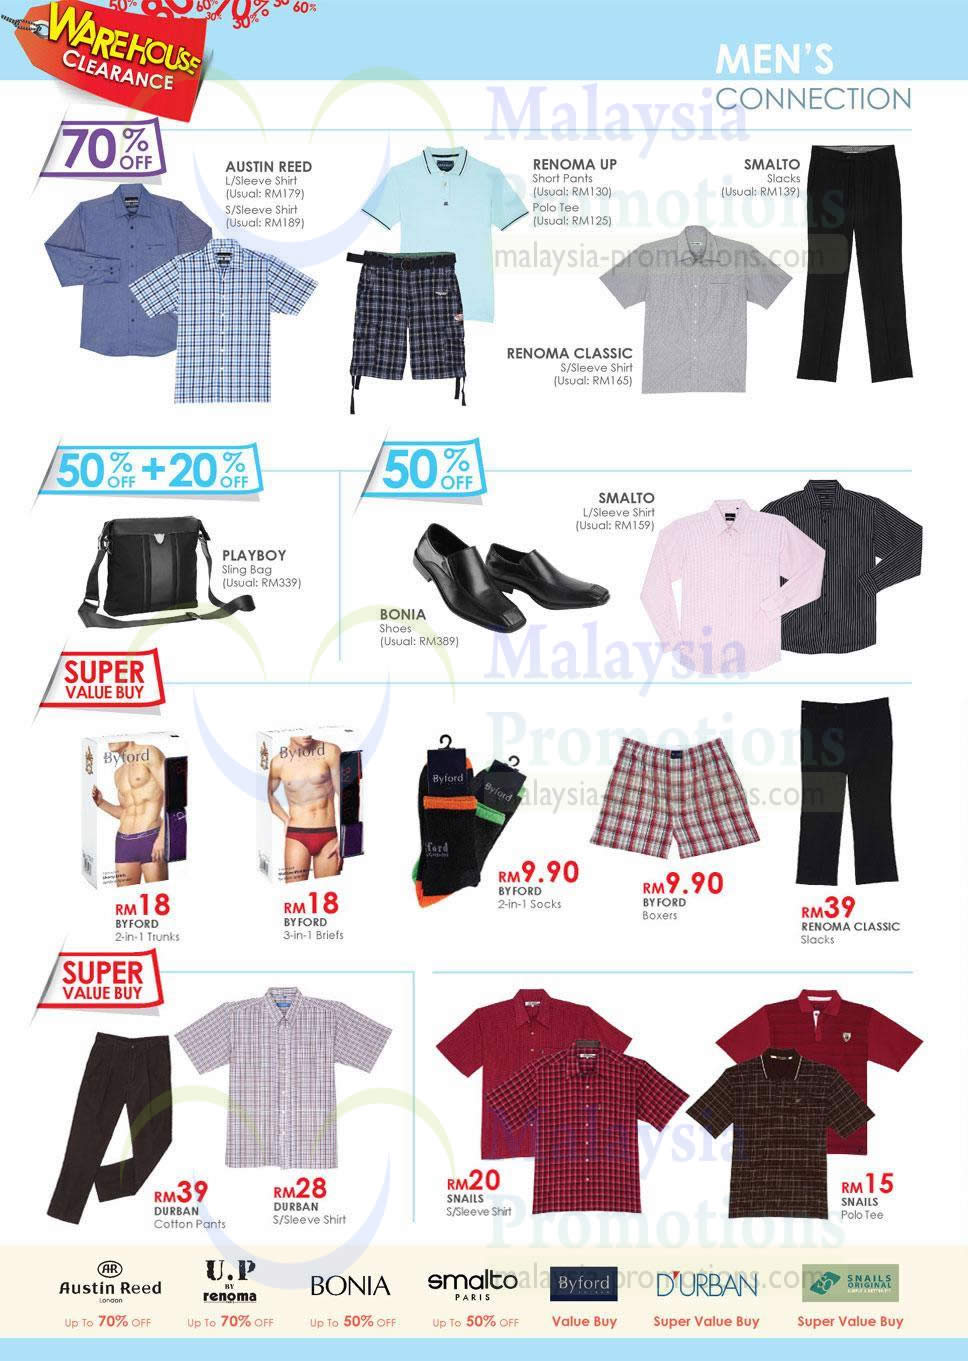 Mens Conneciton Austin Reed Renoma Playboy Bonia Smalto Byford Durban Kl Sogo Warehouse Clearance Sale Up To 70 Off Price List Offers 1 5 Jan 2014 Msiapromos Com